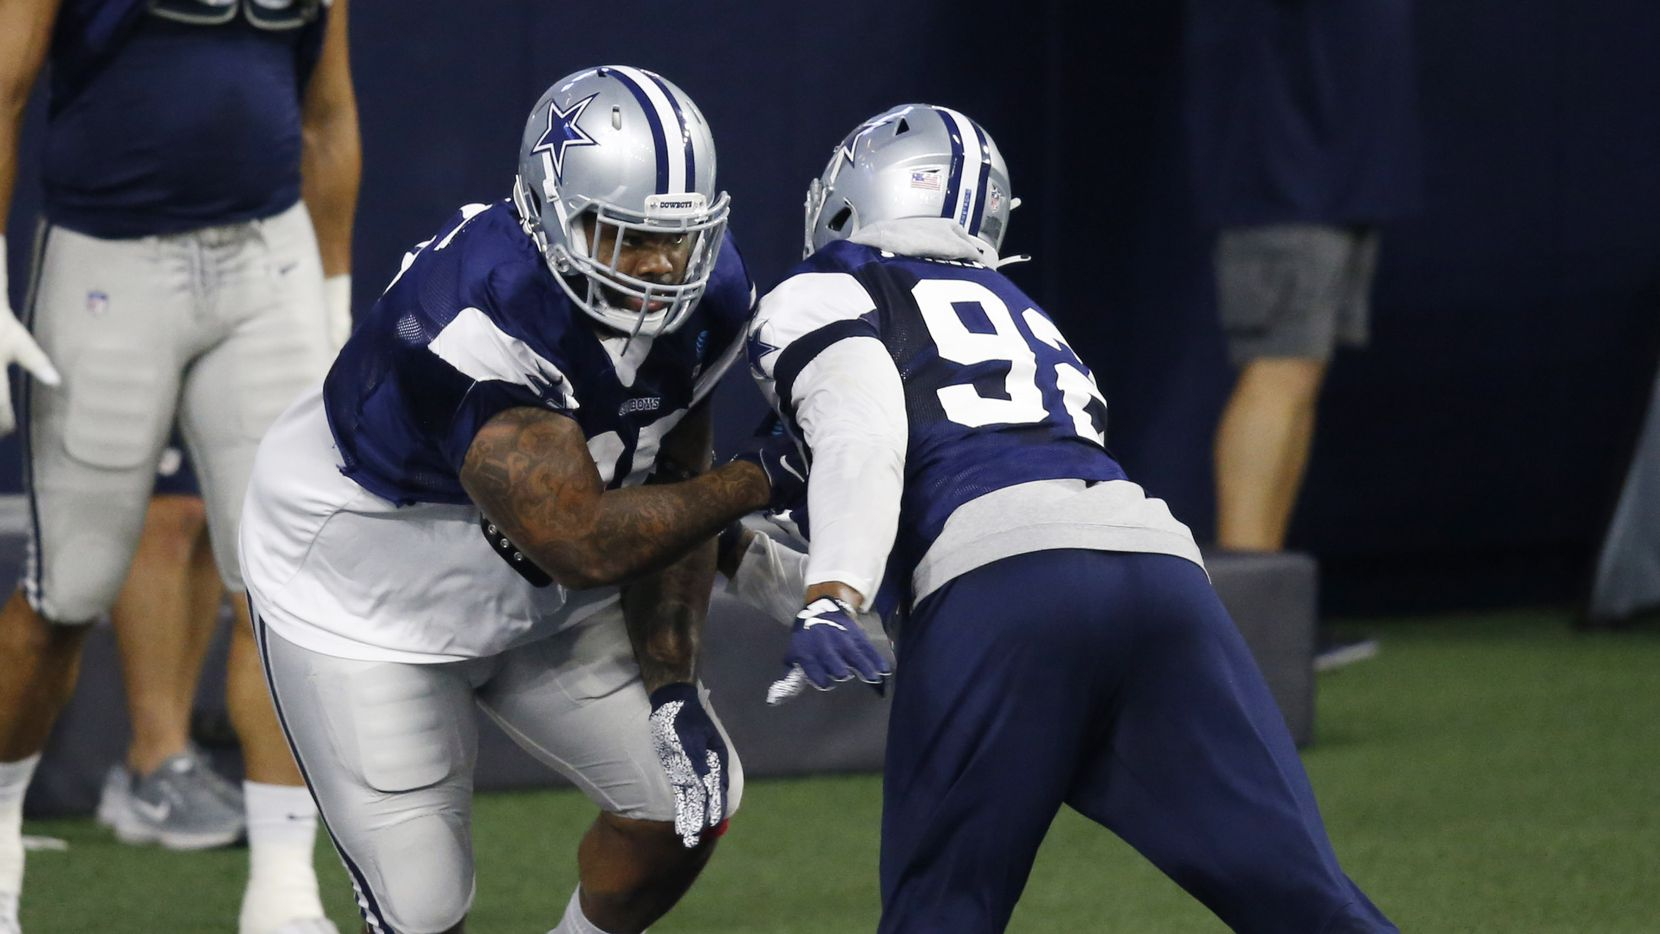 Dallas Cowboys defensive tackle Dontari Poe (95) runs through a drill with Dallas Cowboys defensive end Dorance Armstrong (92) in practice during training camp at the Dallas Cowboys headquarters at The Star in Frisco, Texas on Sunday, August 23, 2020.